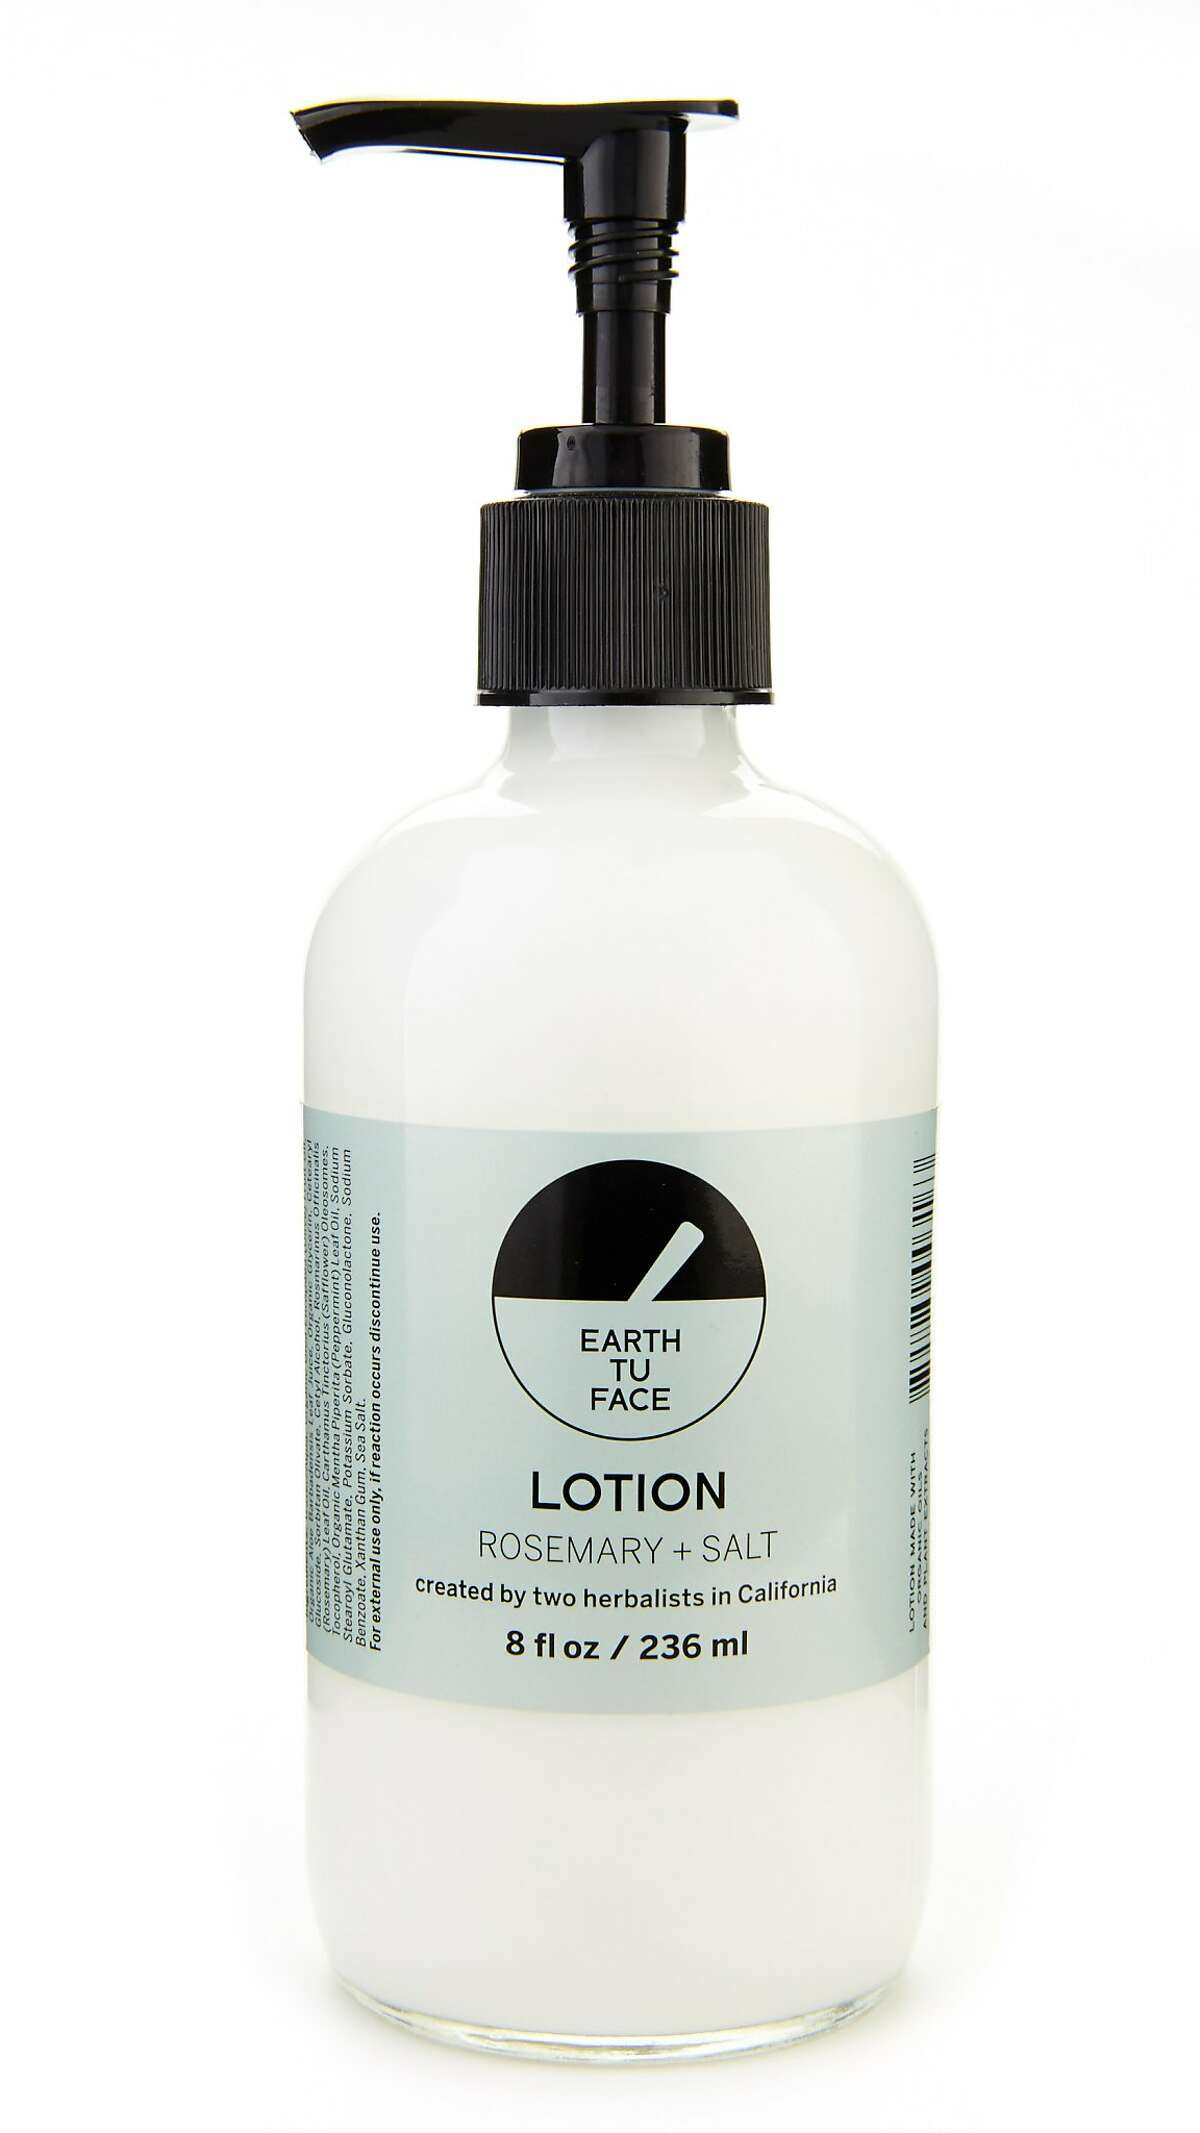 Give new life to tired hands and feet with invigorating Rosemary + Salt Lotion from Oakland-based Earth Tu Face. Created by herbalists and inspired by the ocean air, this creamy blend is infused with antioxidant rosemary, nourishing Vitamin E and a hint of peppermint oil. The scent is powerful, so start slow. ($38, www.earthtuface.com)